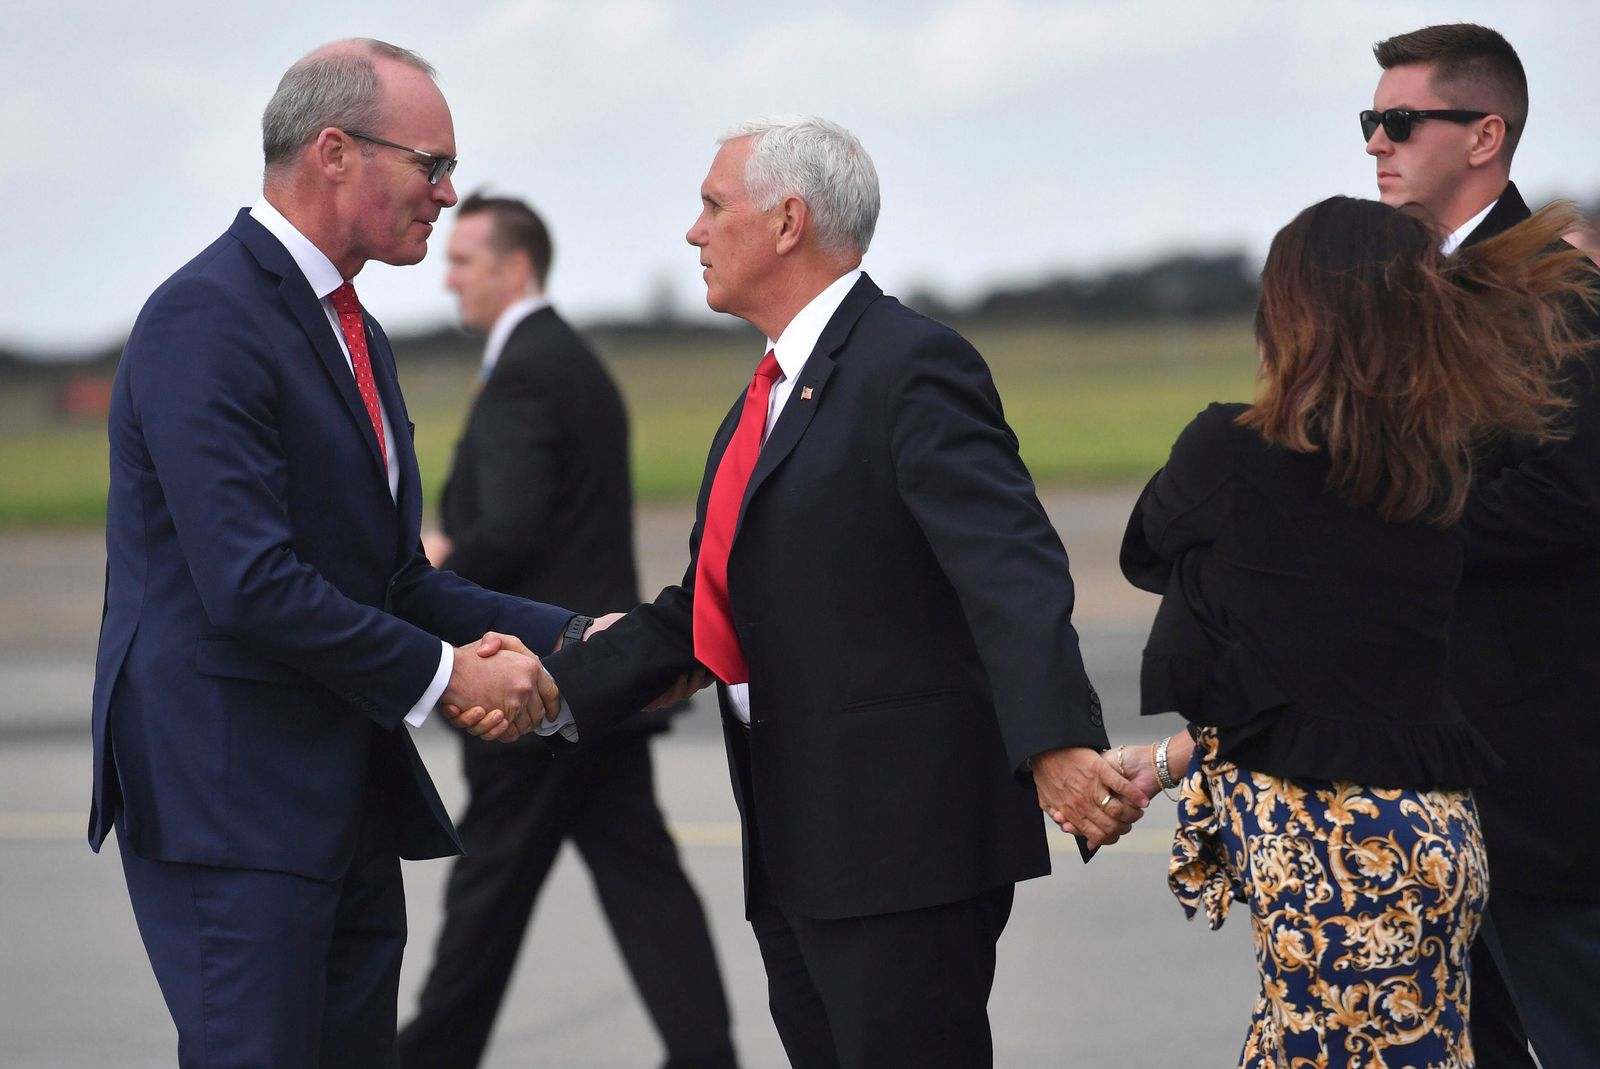 Ireland's Minister of foreign affairs Simon Coveney, left, meets US Vice President Mike Pence as he arrives at Shannon airport for the start of an official visit to Ireland, Monday, Sept. 2, 2019. (Jacob King/PA via AP)